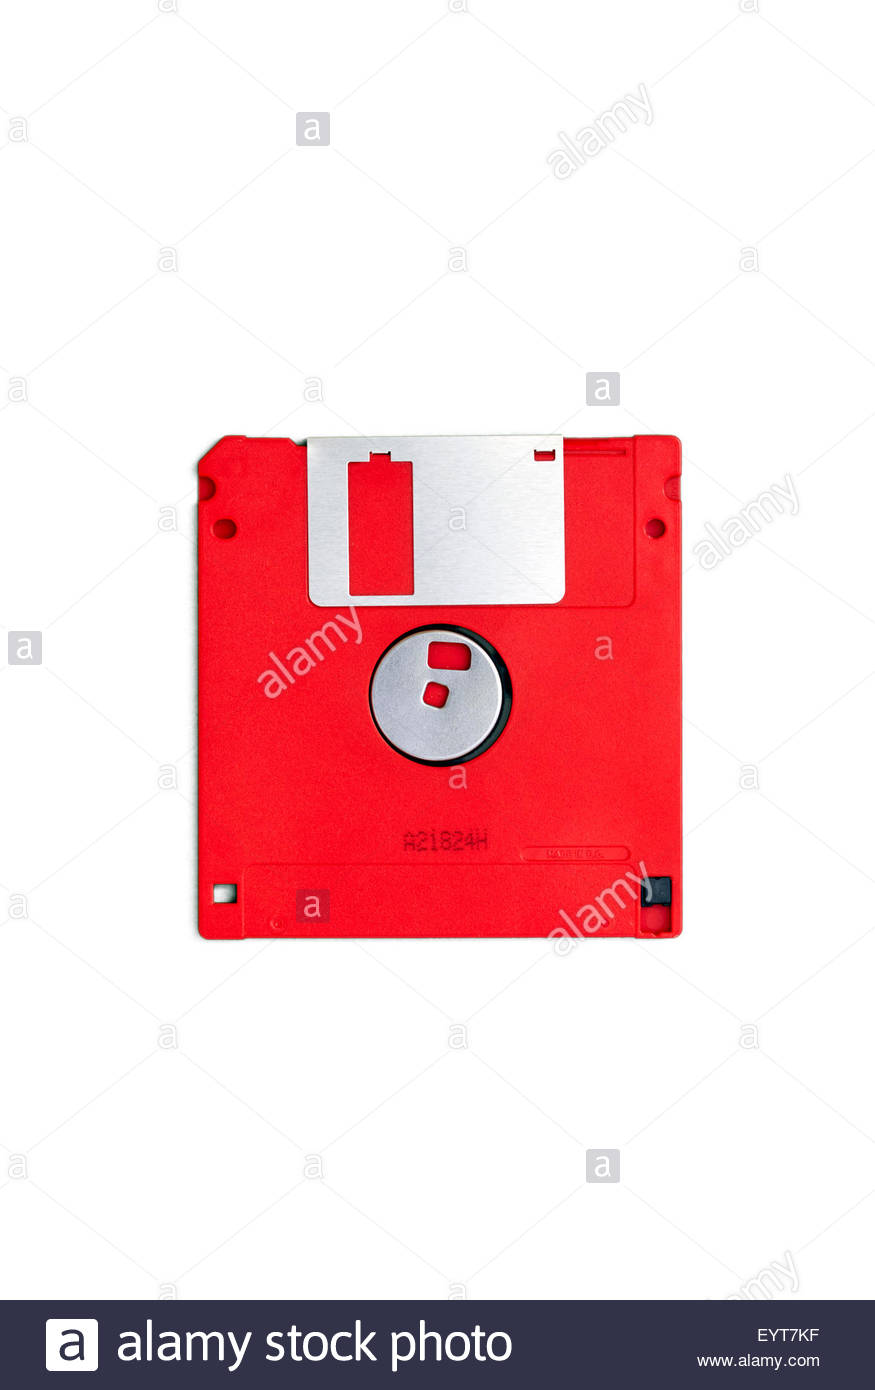 A 3.5 Diskette data recording storage disc for storing computer data - Stock Image